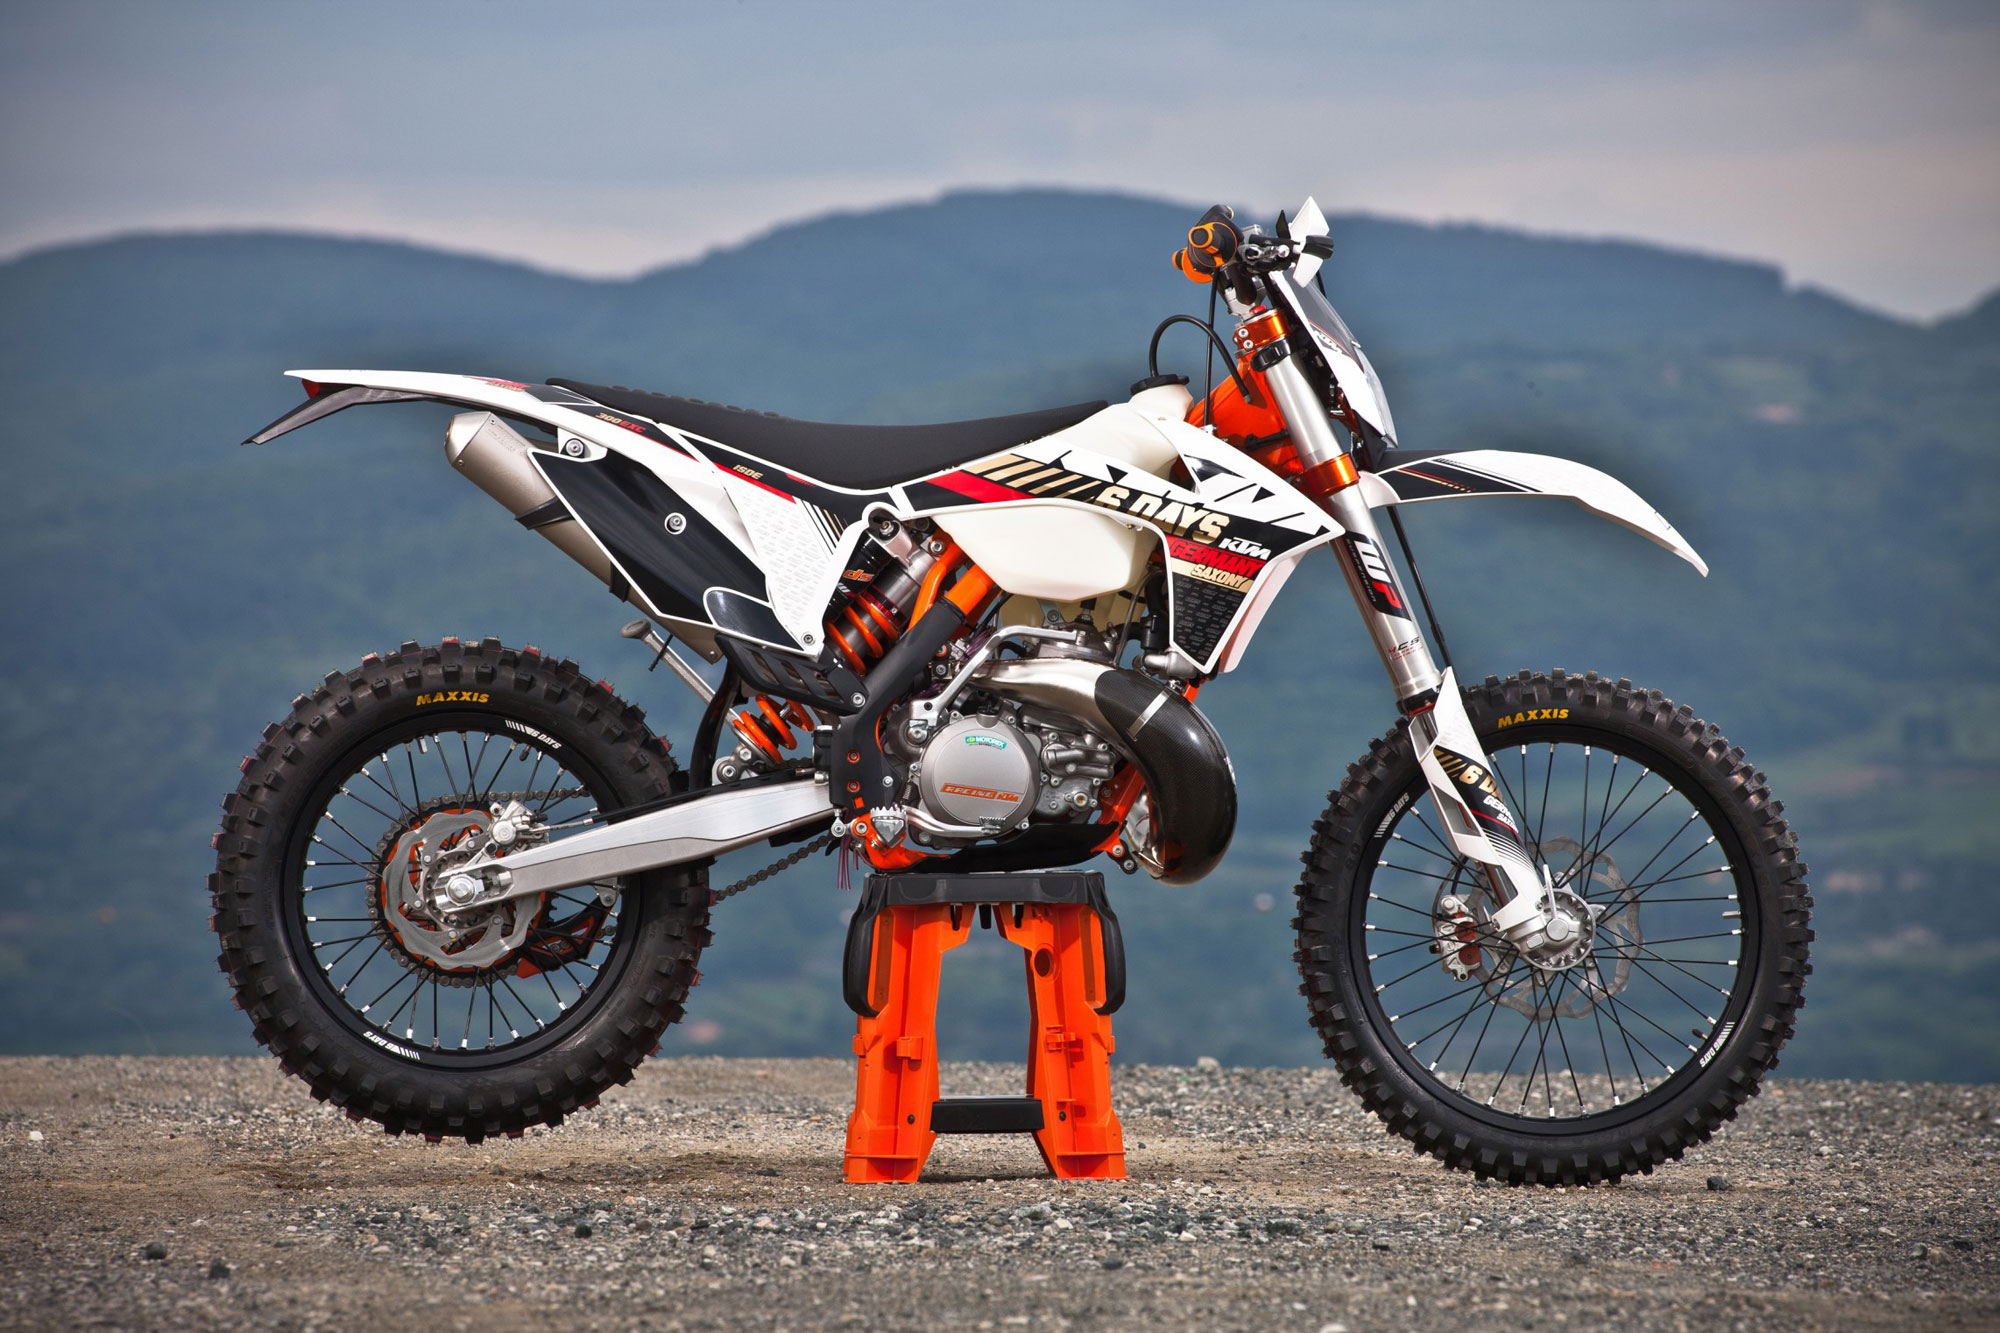 KTM 300 MXC 2002 images #85462